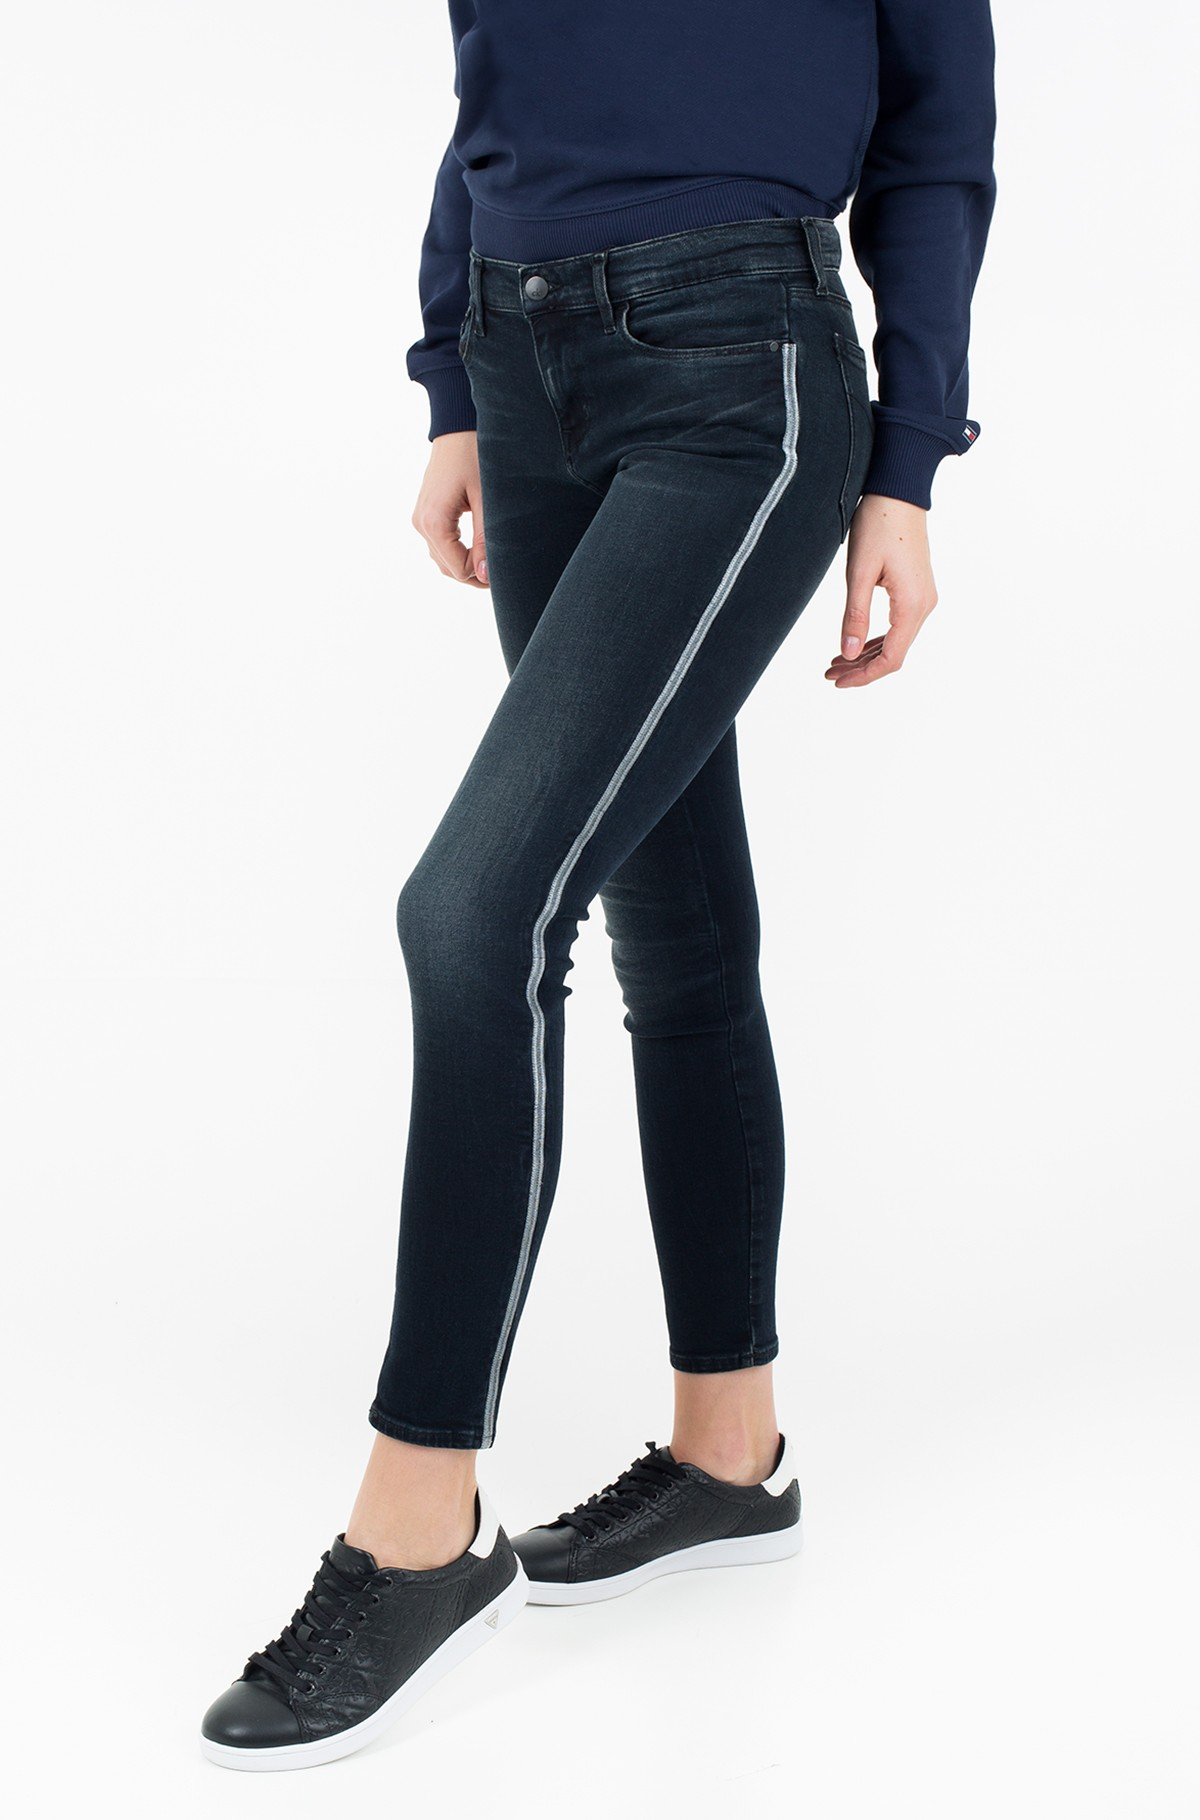 Jeans Mid Rise Skinny Ankle - Blackwater Embro-full-1